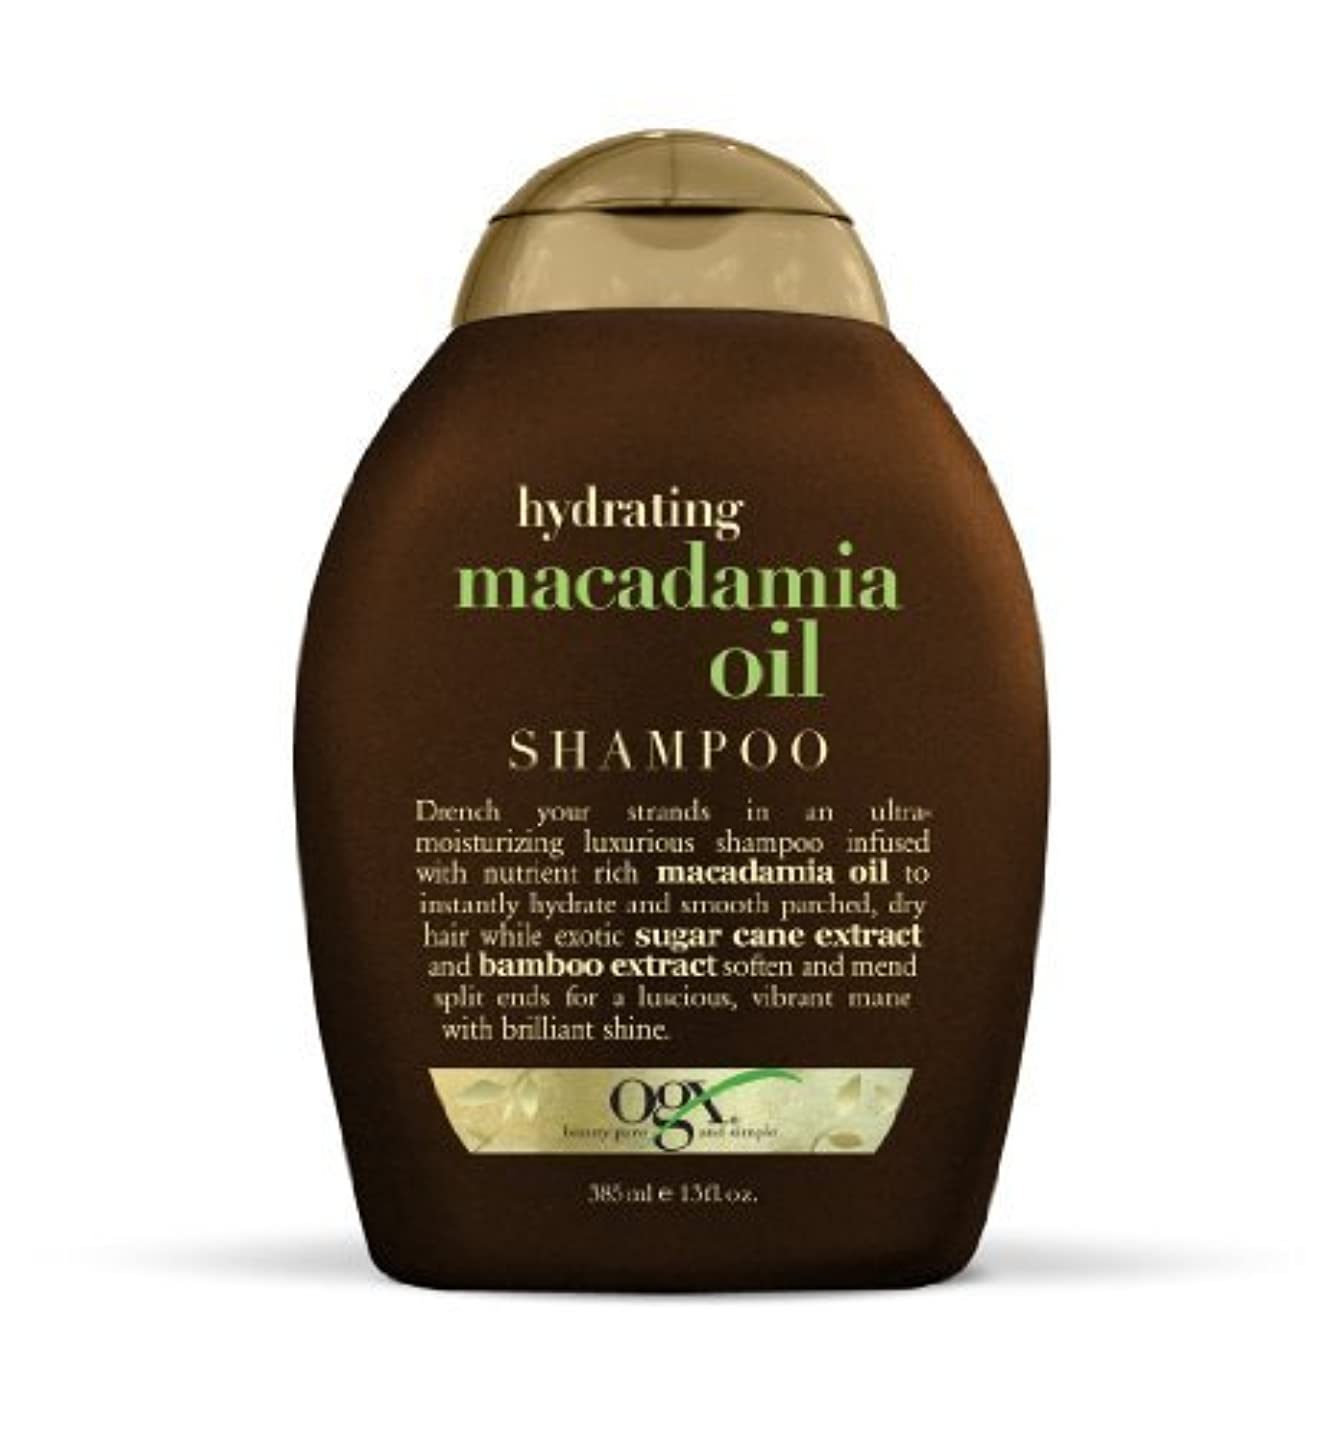 抗生物質広がり前文OGX Shampoo, Hydrating Macadamia Oil, 13oz by Ogx [並行輸入品]